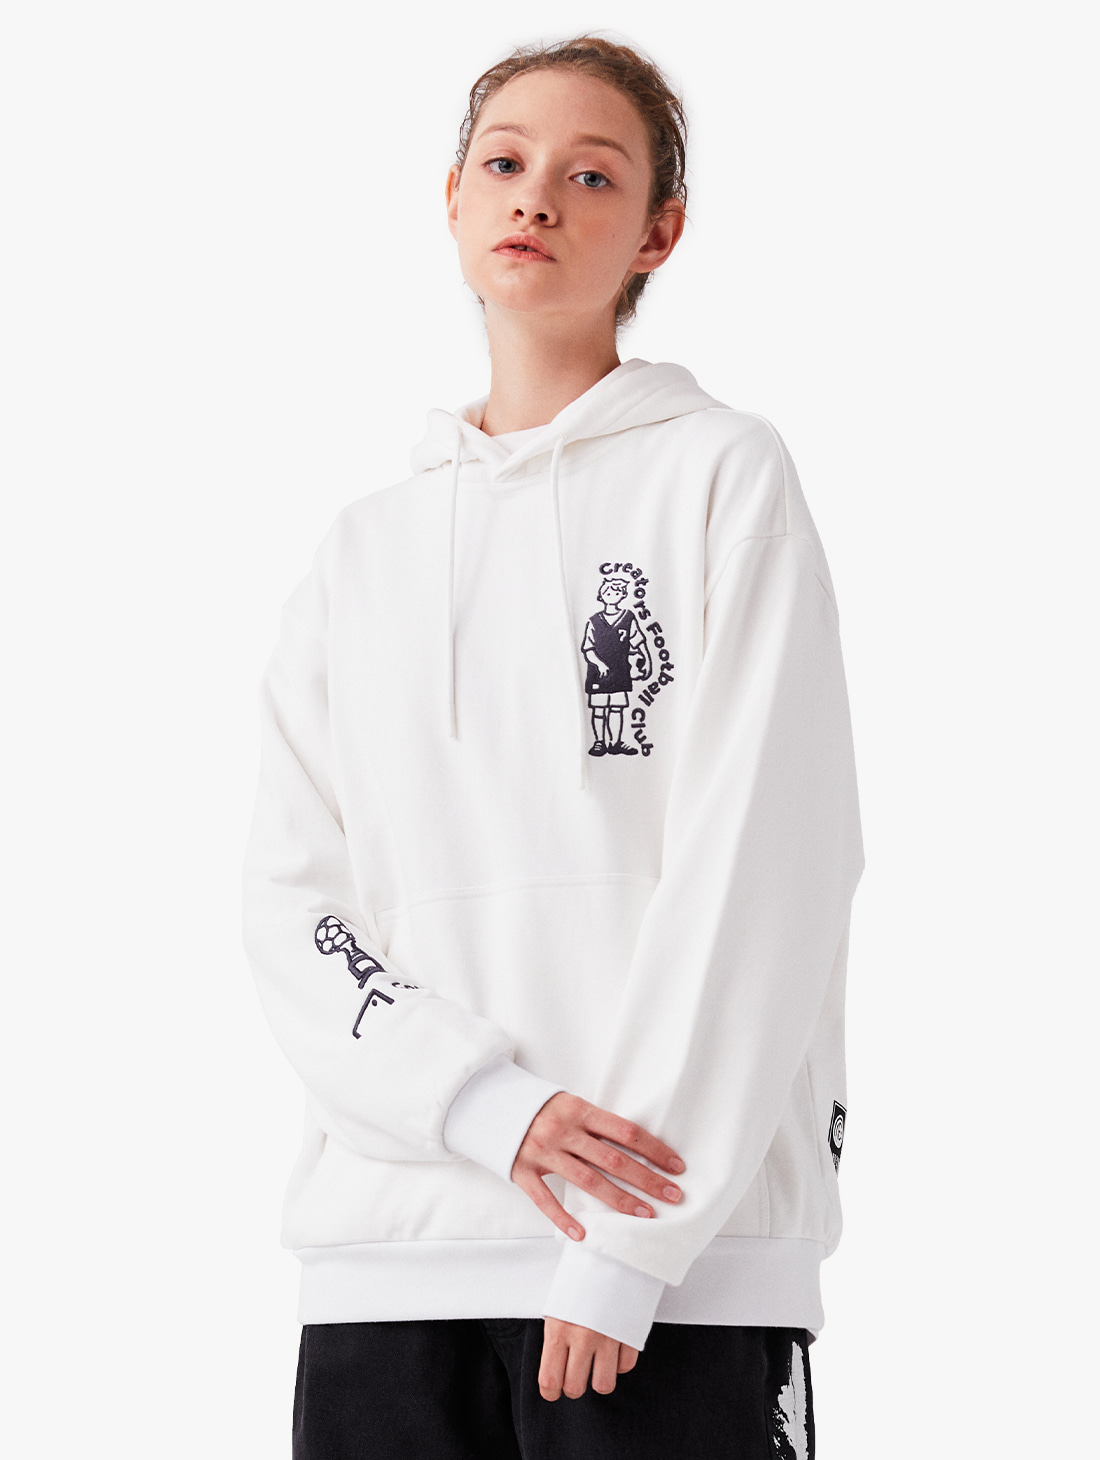 CFC BOY ARTWORK  HOODIE (2 Colors)